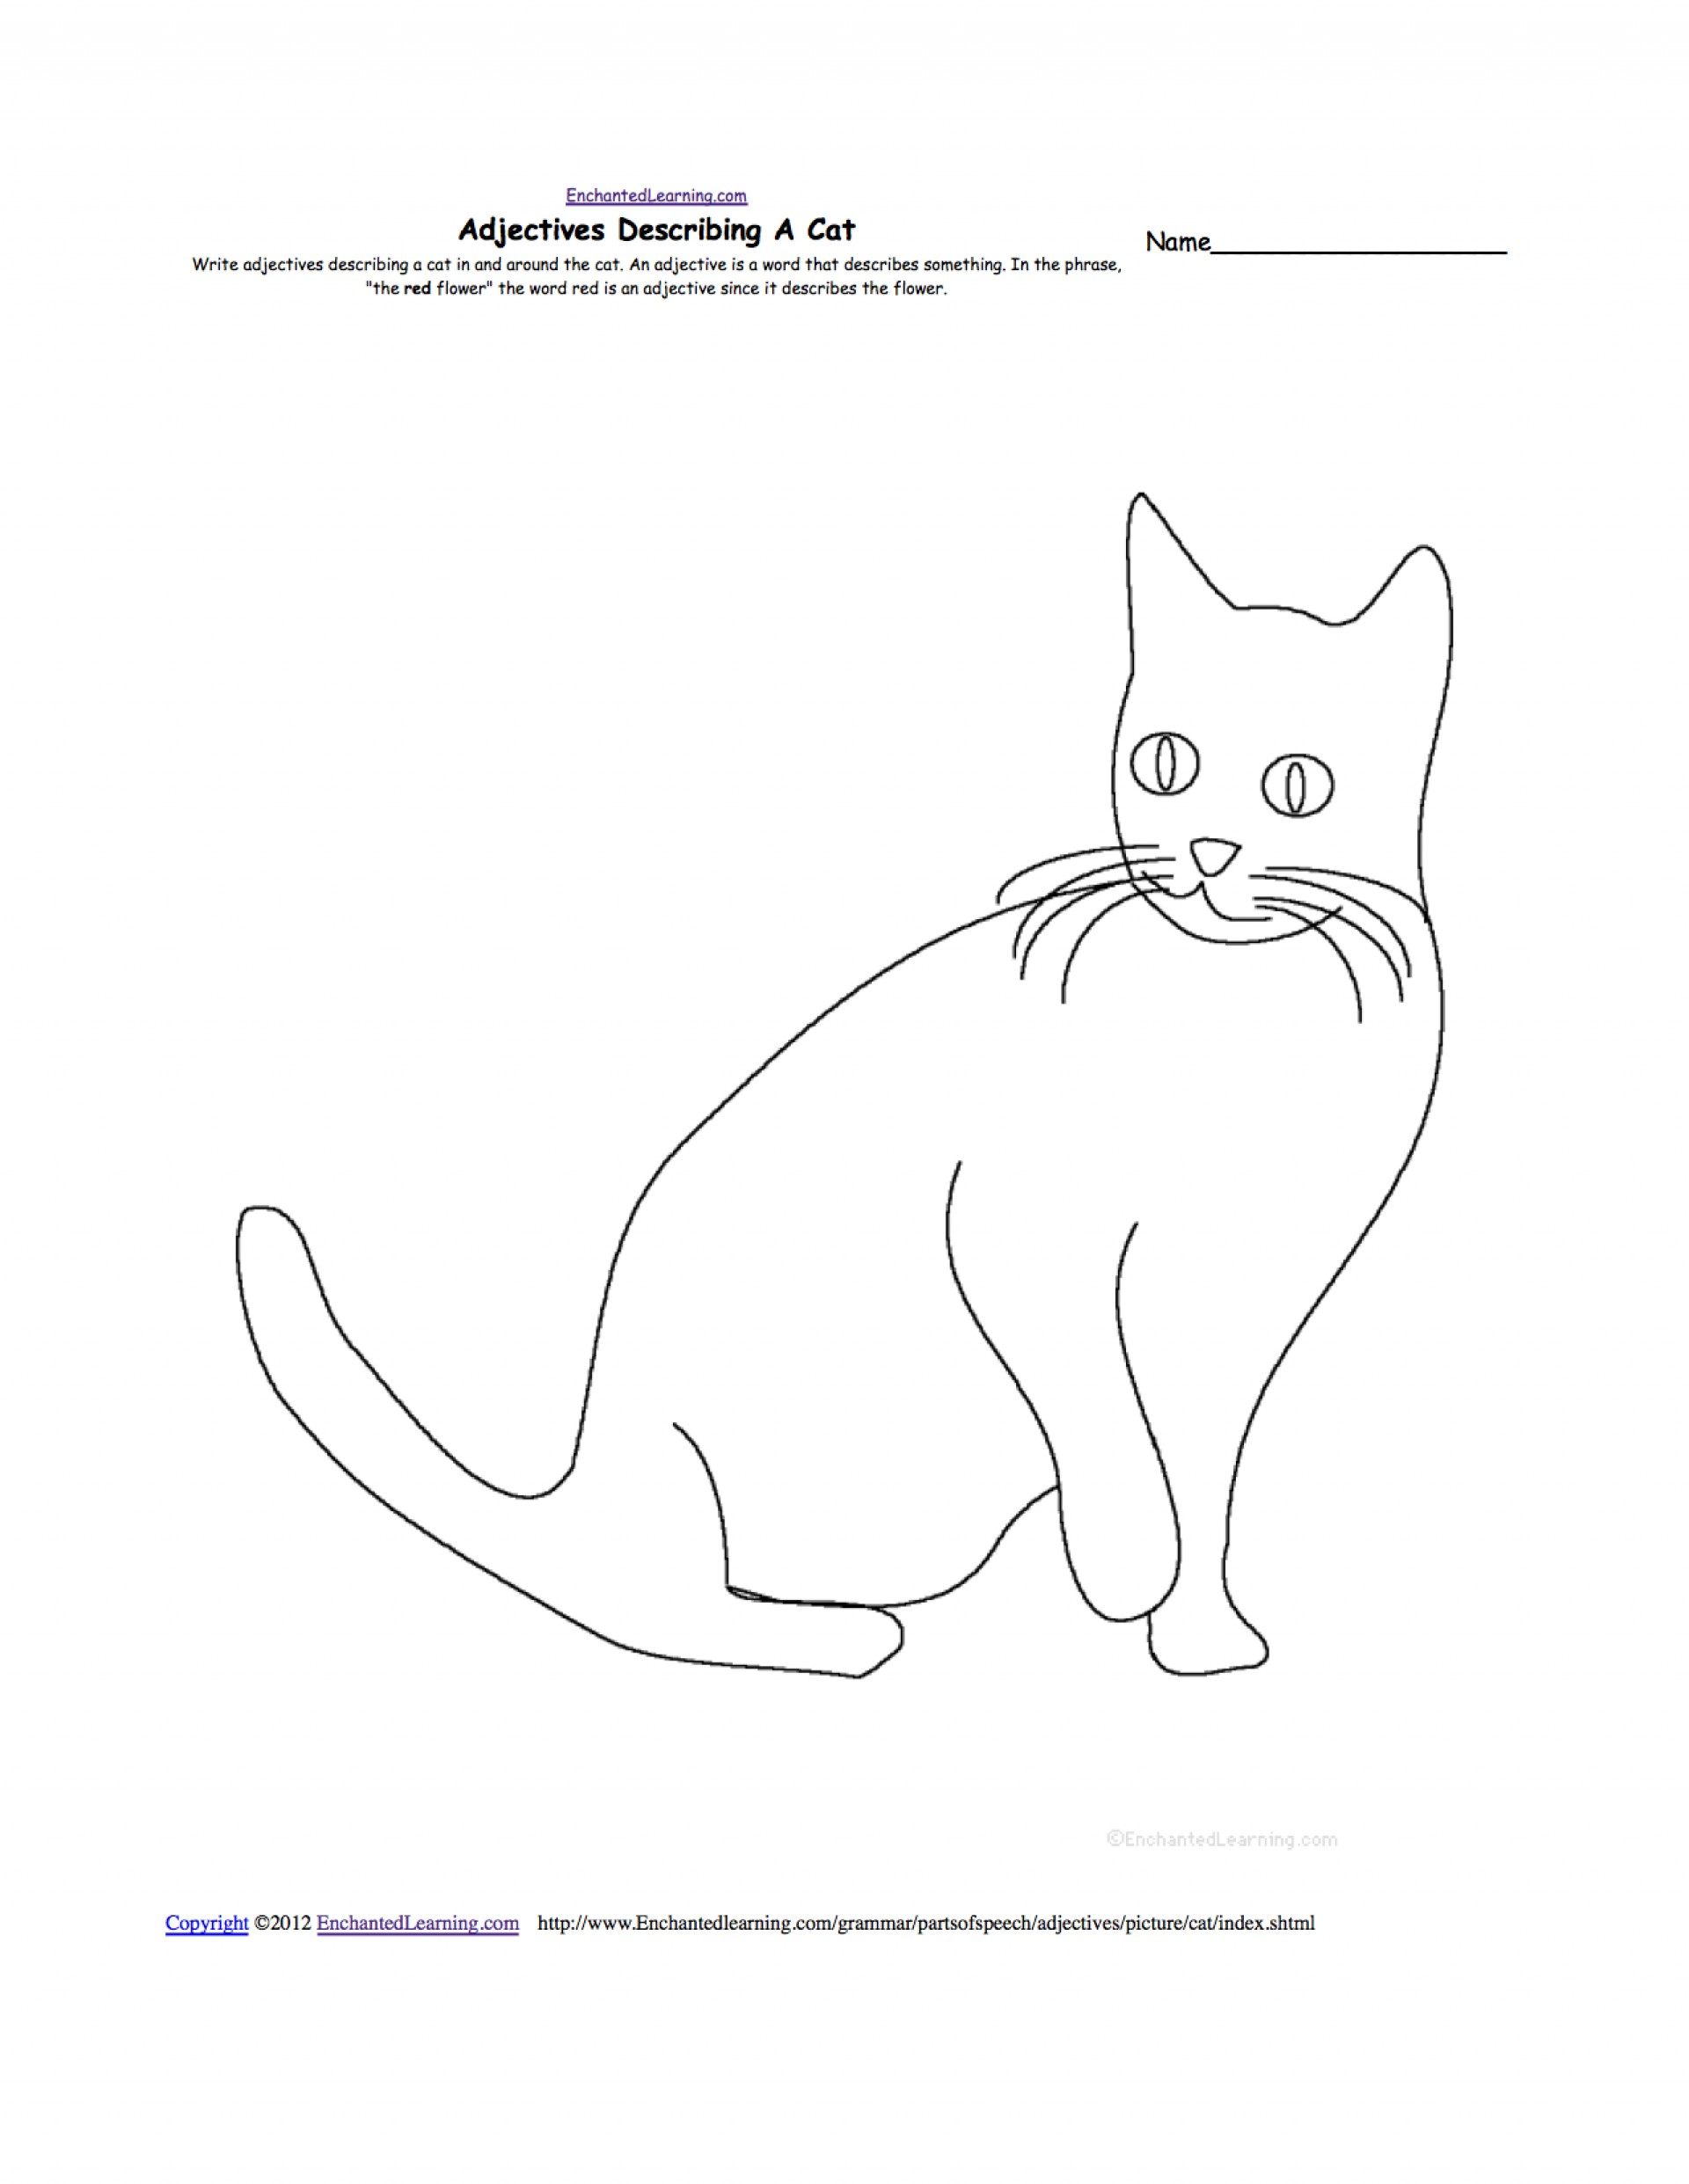 016 Pet Animal Cat Essay Cats And Dogs Compare Contrast Pets Writing Worksheets Com Vine Catadjec My In Hindi Topics Dreaded Favorite English Tamil 1920